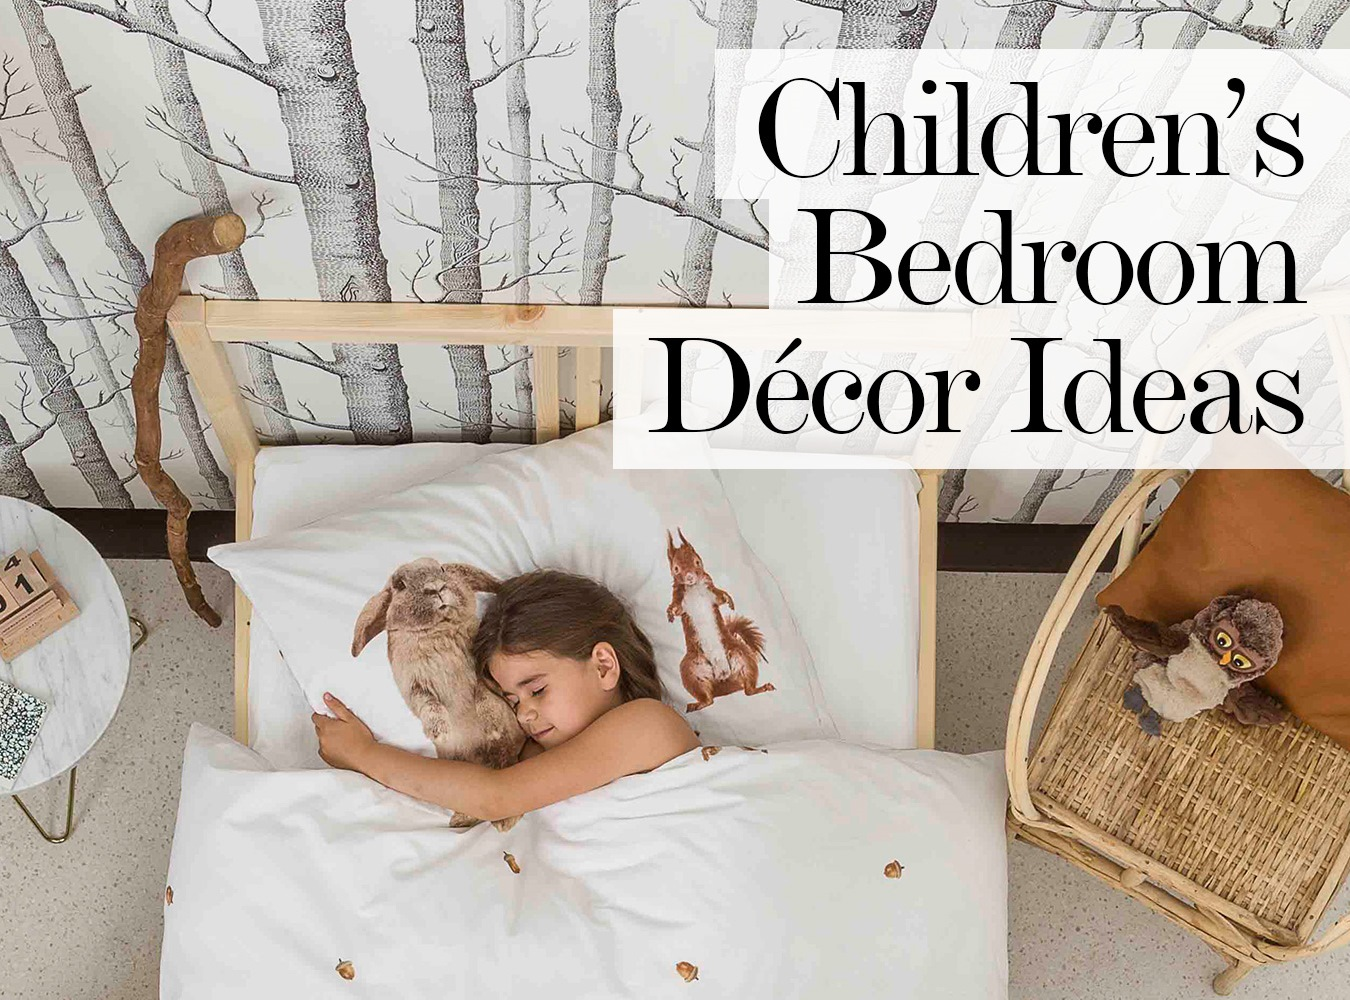 Childrens Bedroom Colour Schemes 19 Stylish Ways To Decorate Your Children S Bedroom The Luxpad